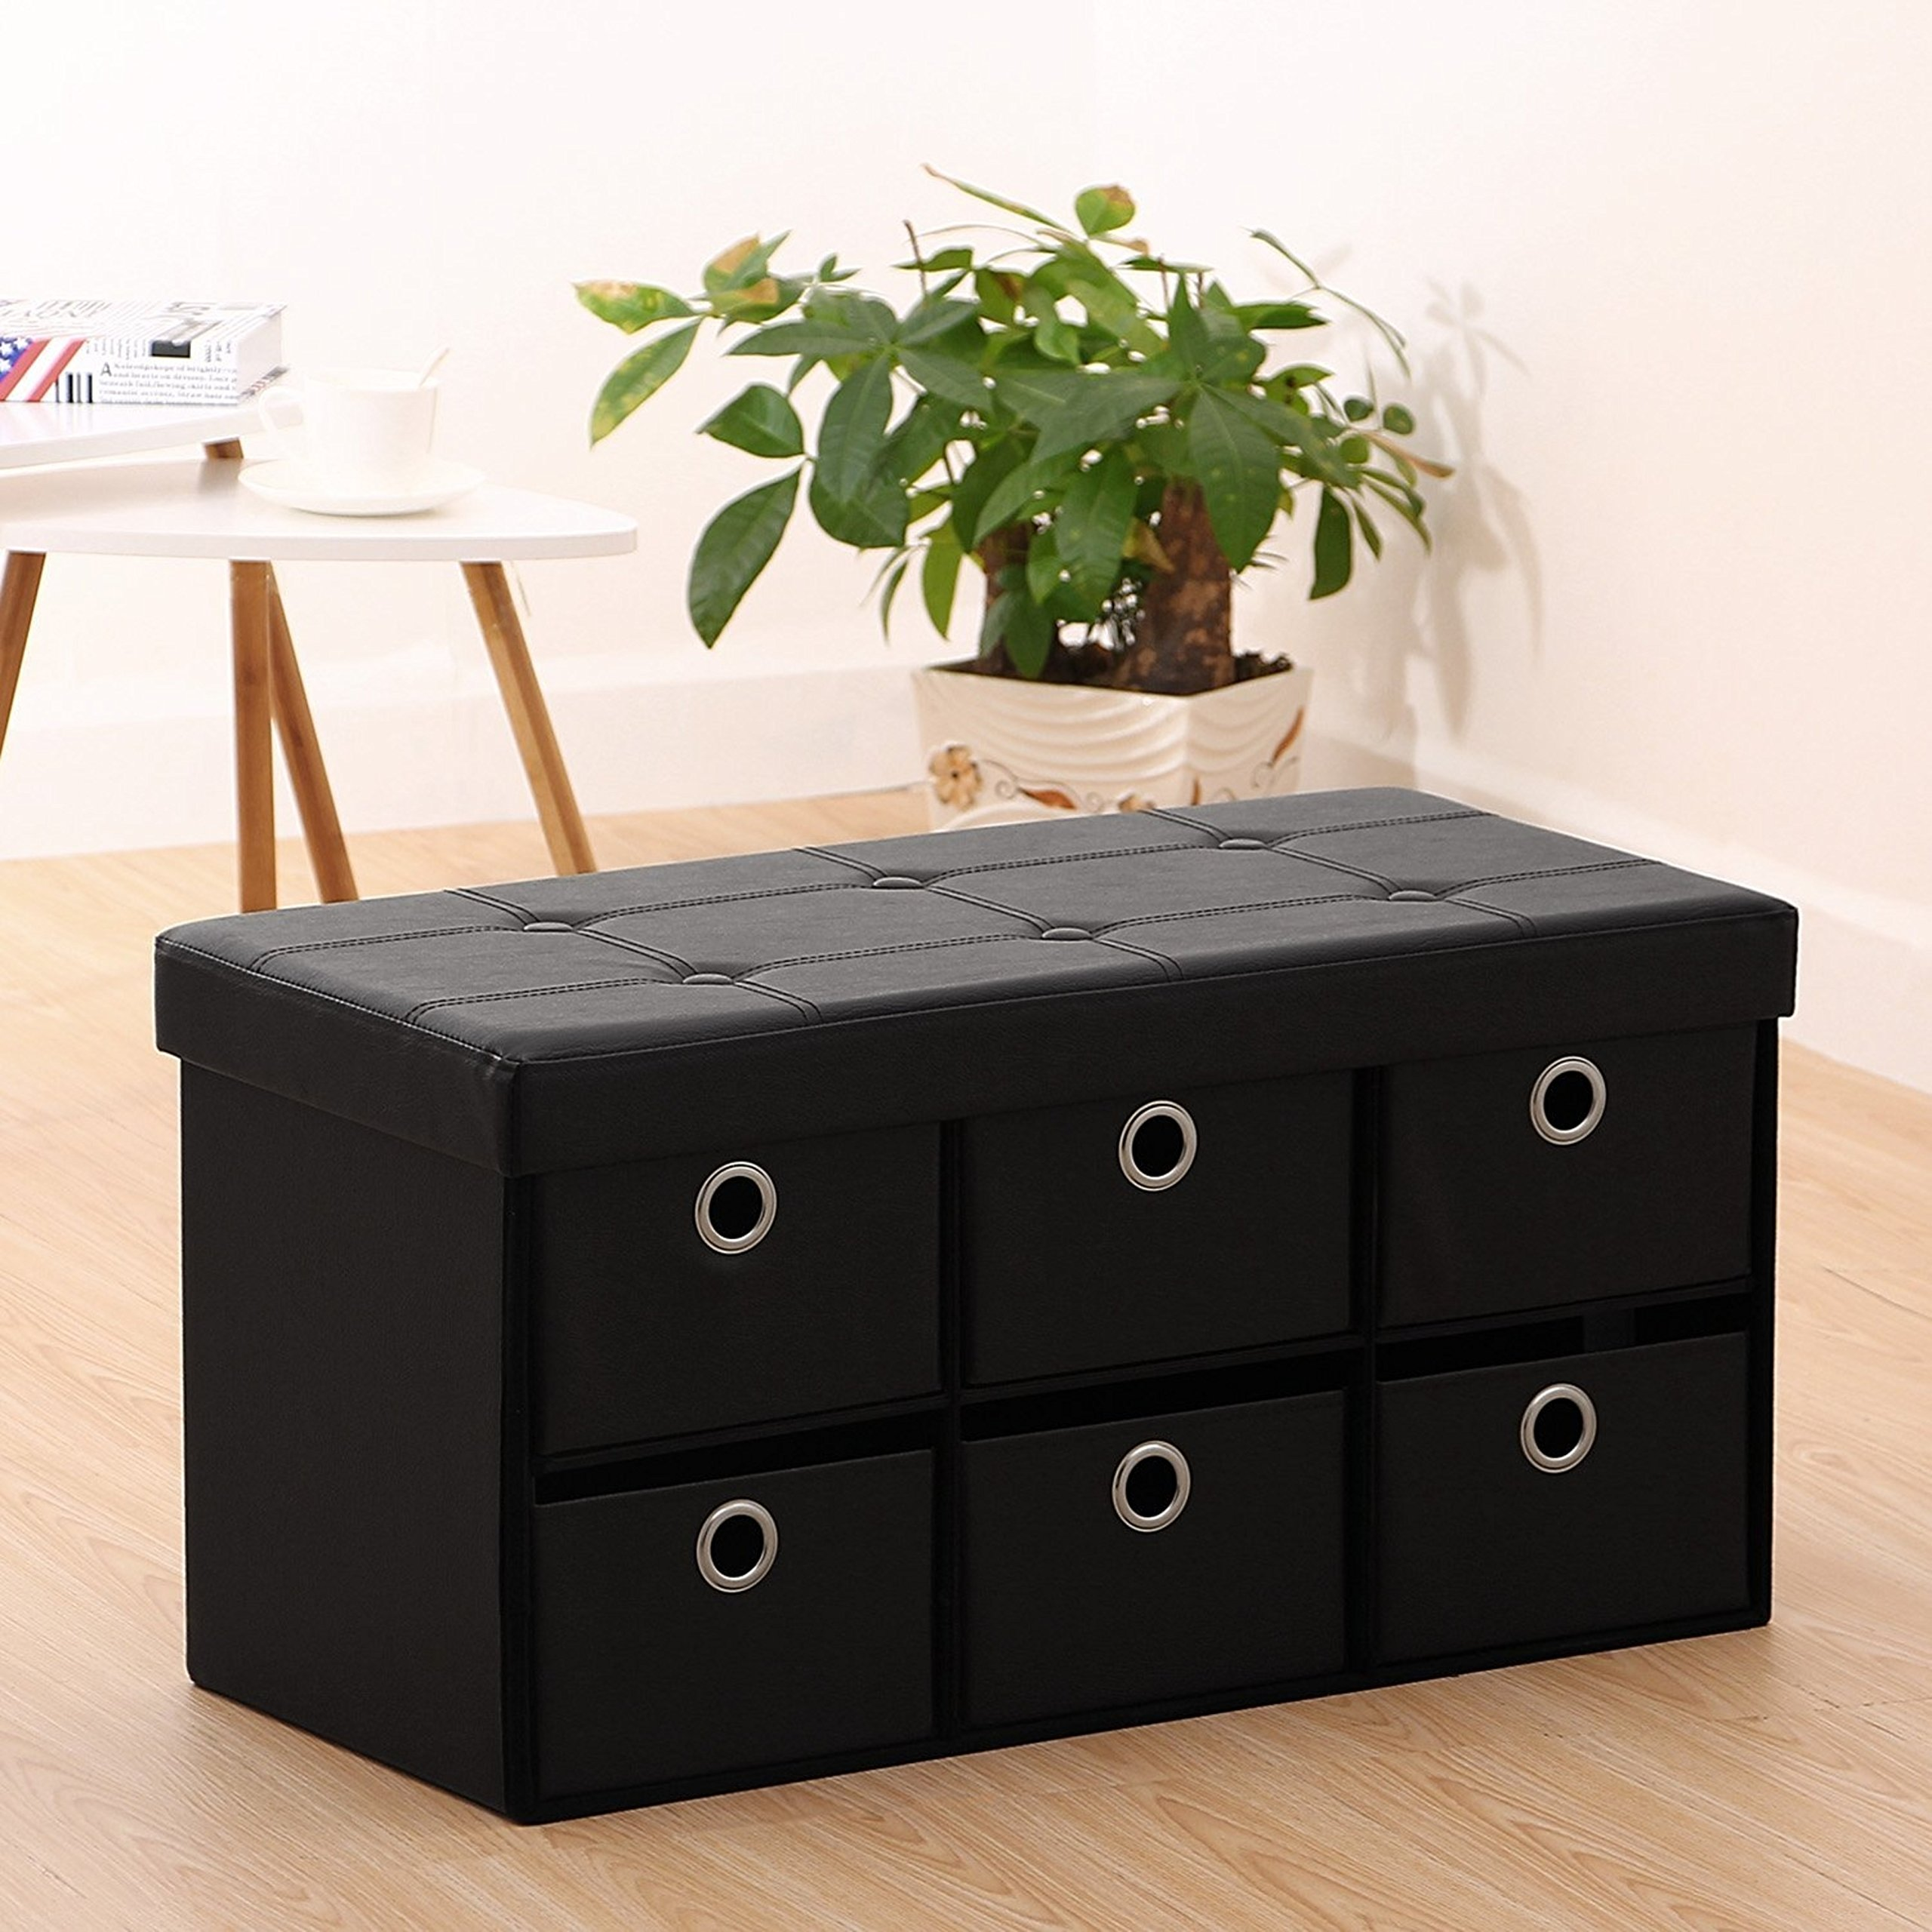 Foldable 6 Drawer Dividers 2in1 Black Ottoman Seat with Storage Bins Box